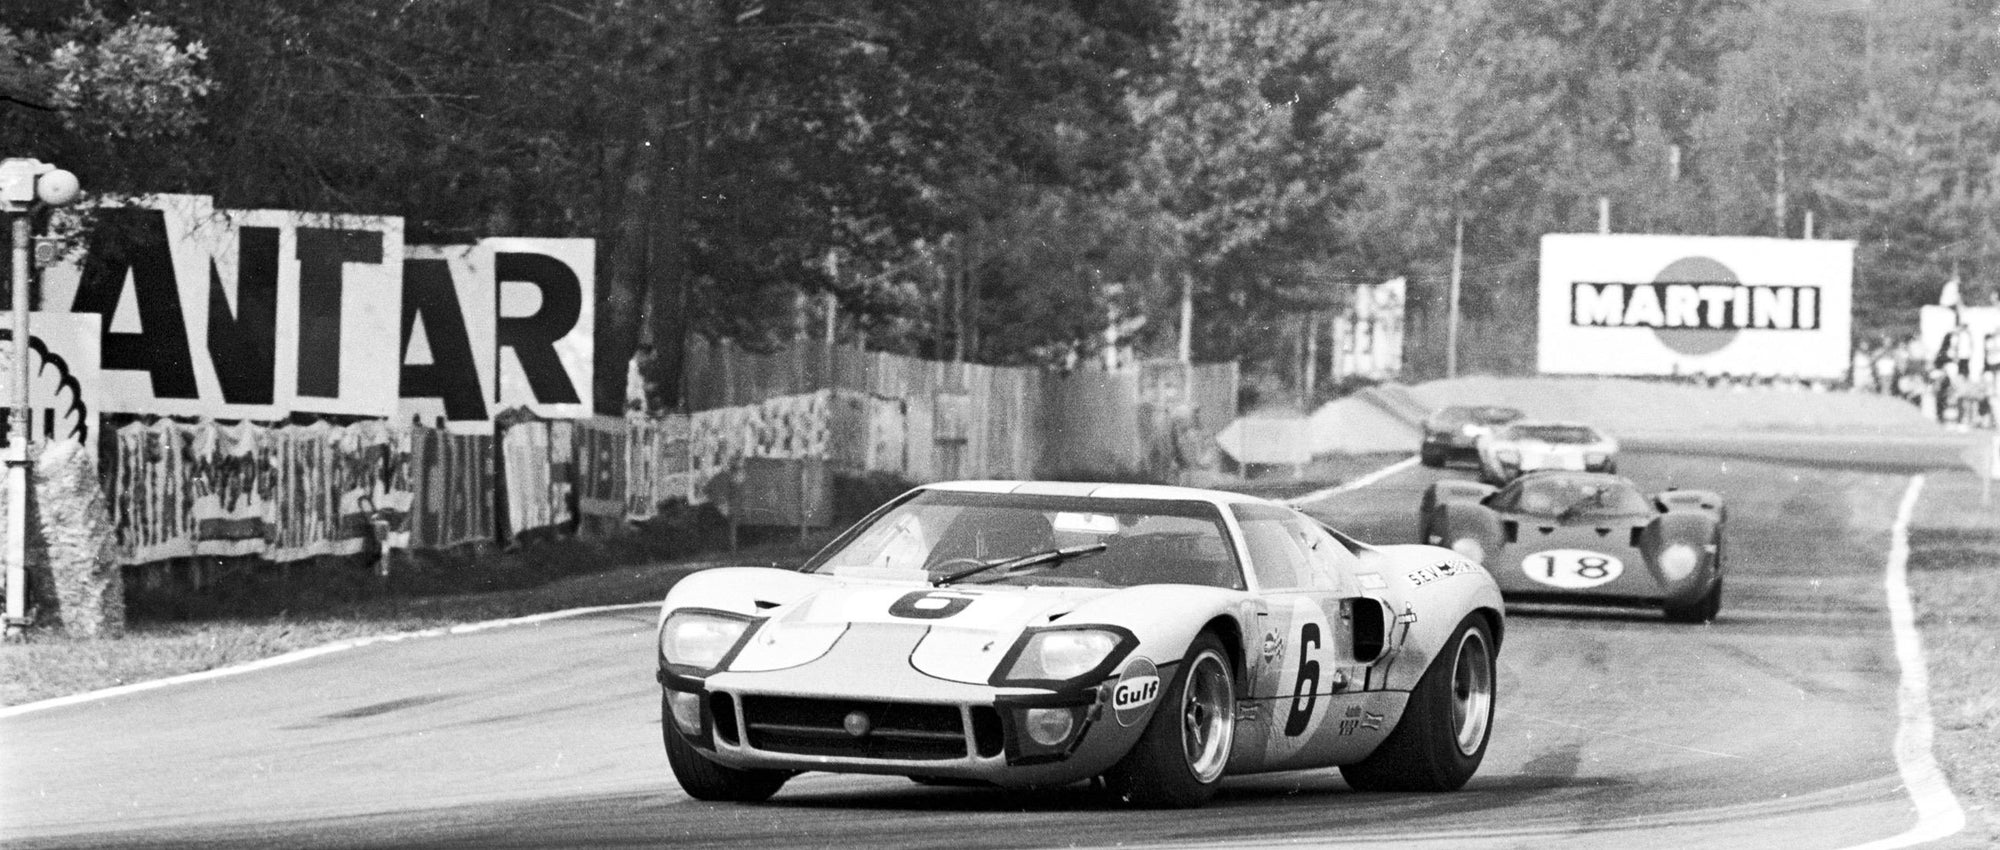 Ford GT40 - 1969 Le Mans Winner